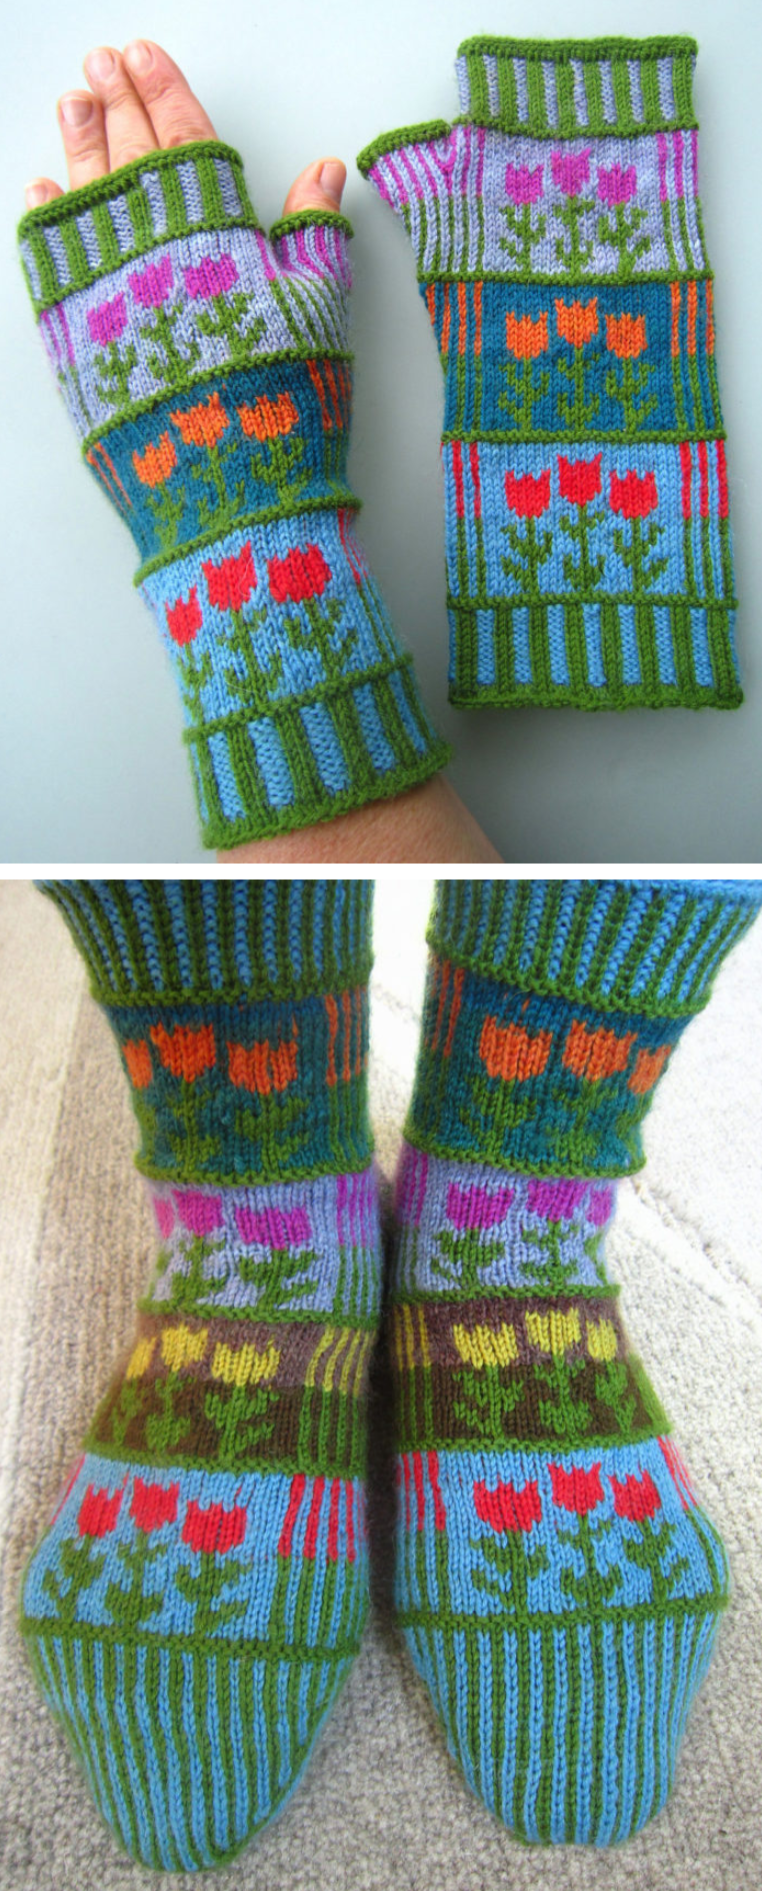 Free Knitting Patterns For Stripes And Tulips Mitts Or Socks Colorful Fingerless Mitts Or Socks Kni Strickmuster Stricken Handschuhe Stricken Socken Stricken